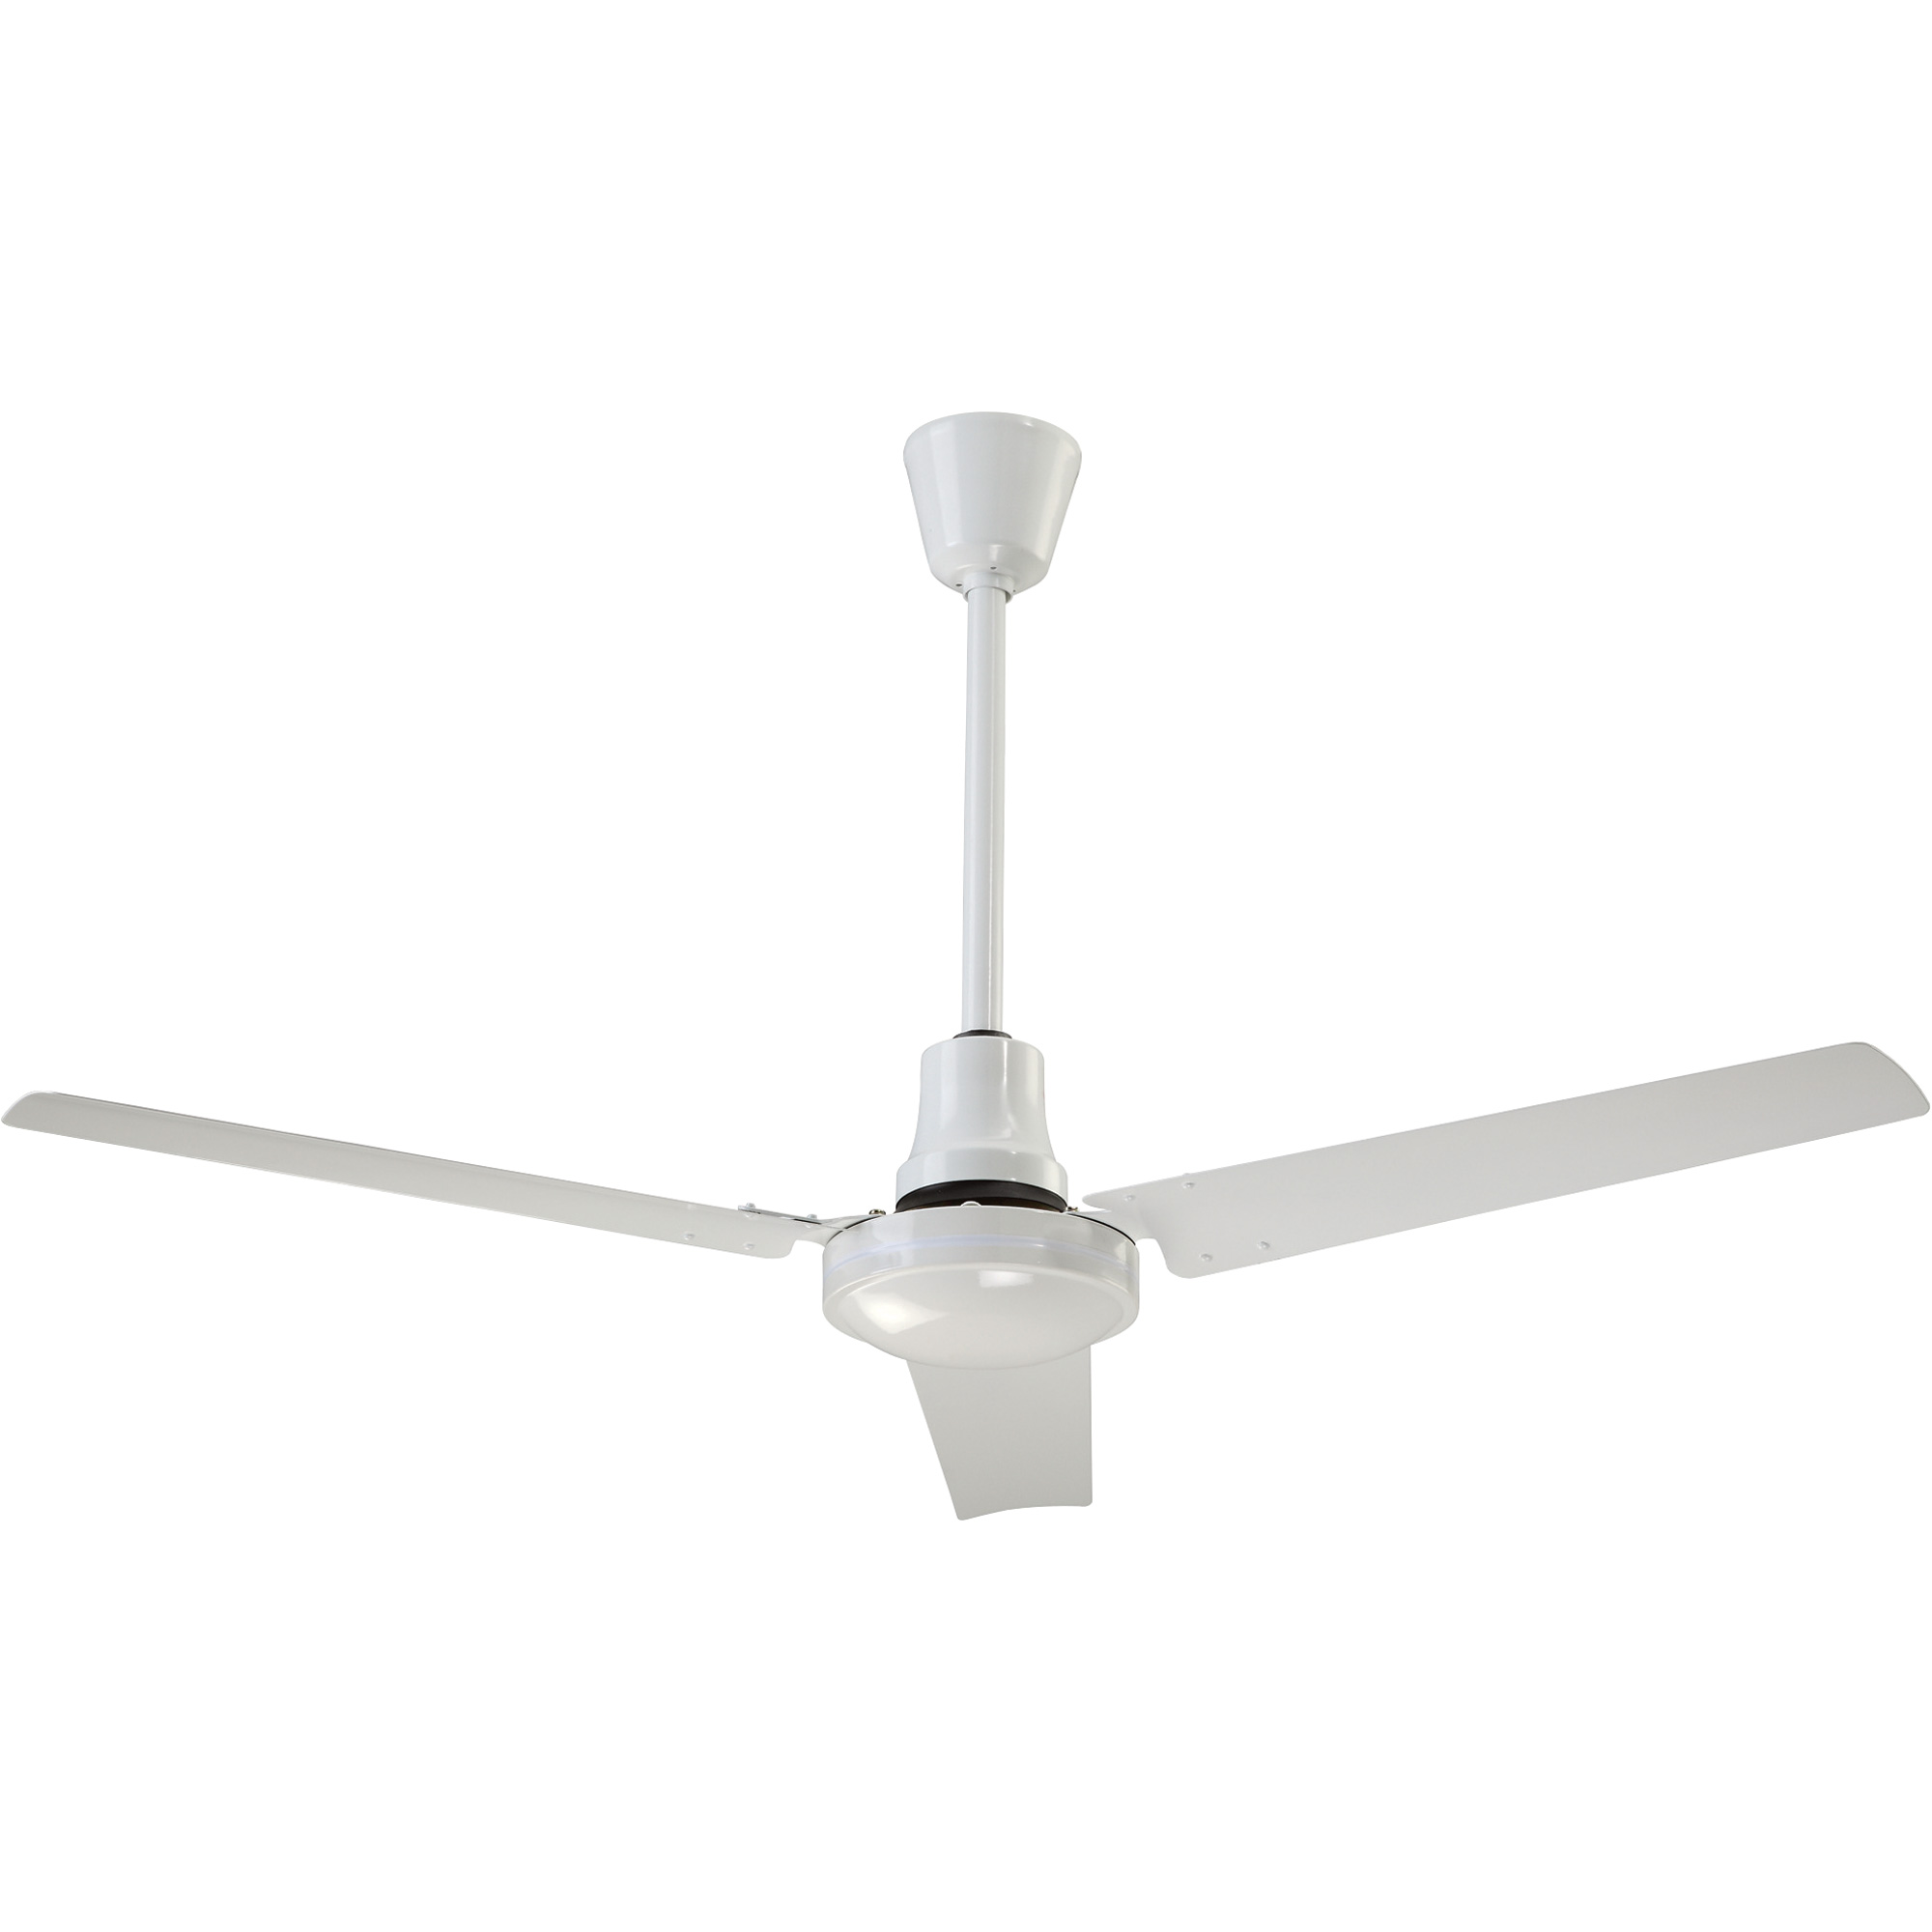 Canarm Reversible Industrial Ceiling Fan 48in White